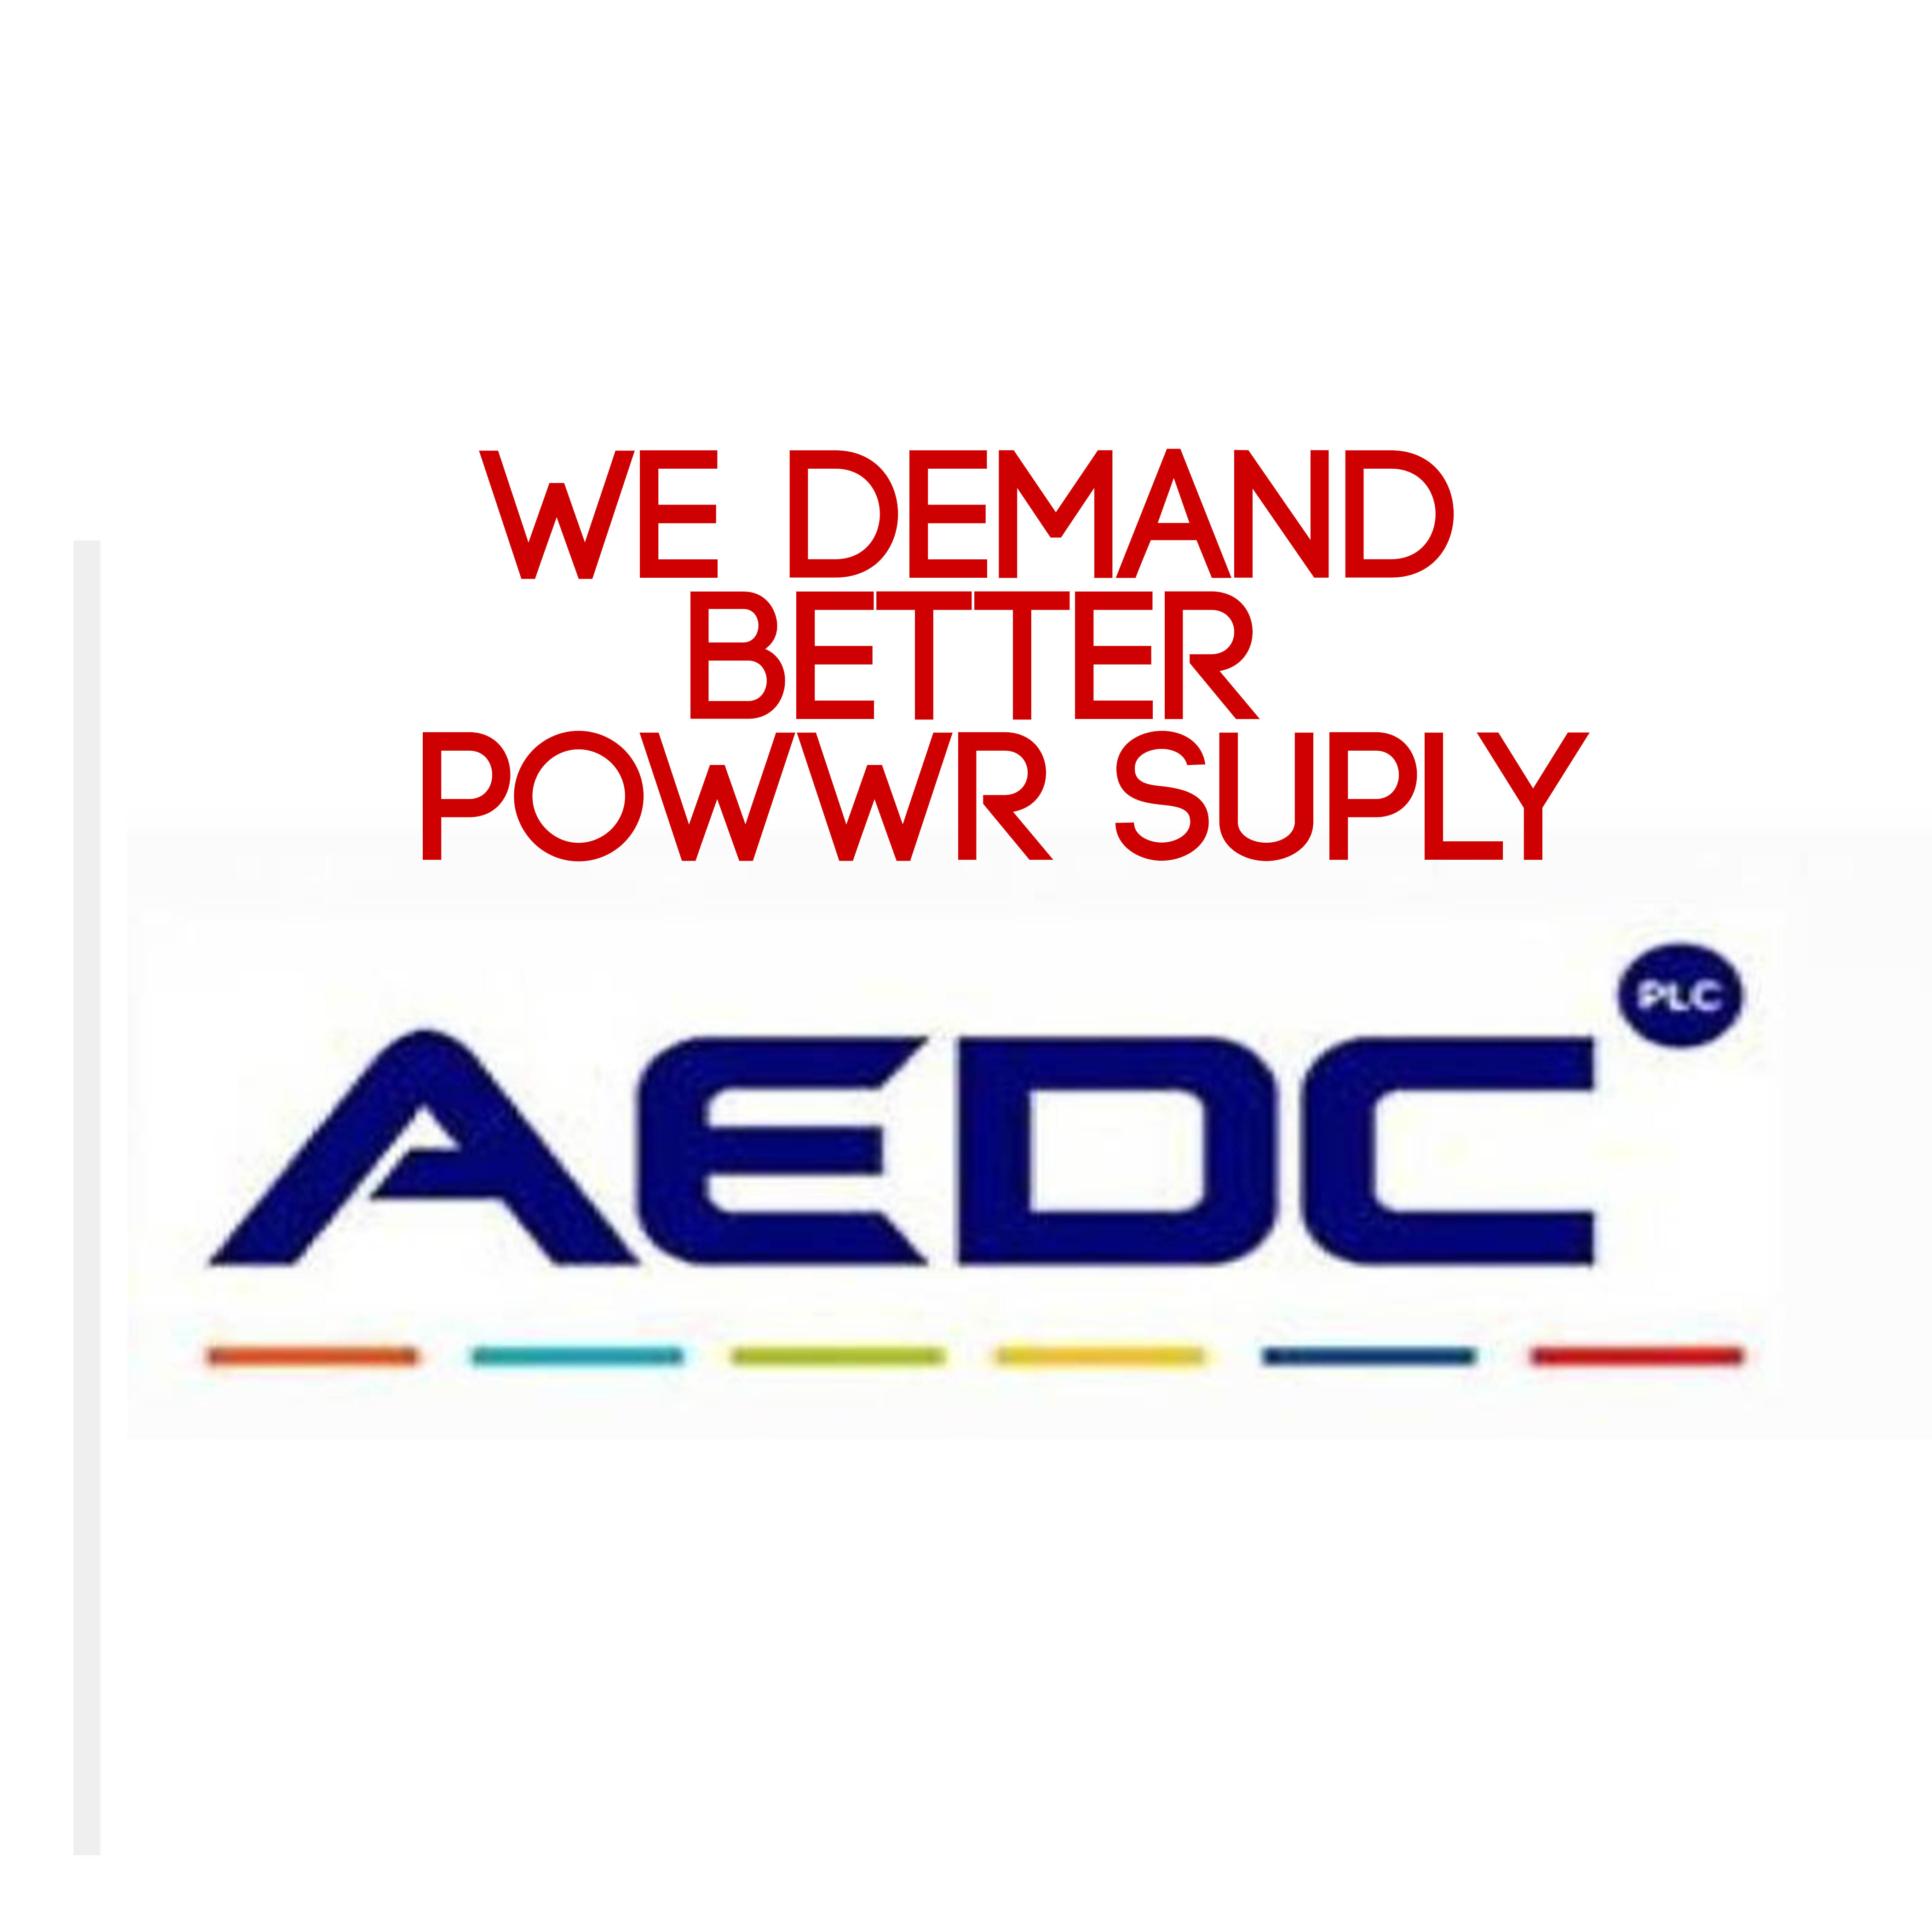 AEDC WE DEMAND BETTER POWER SUPPLY